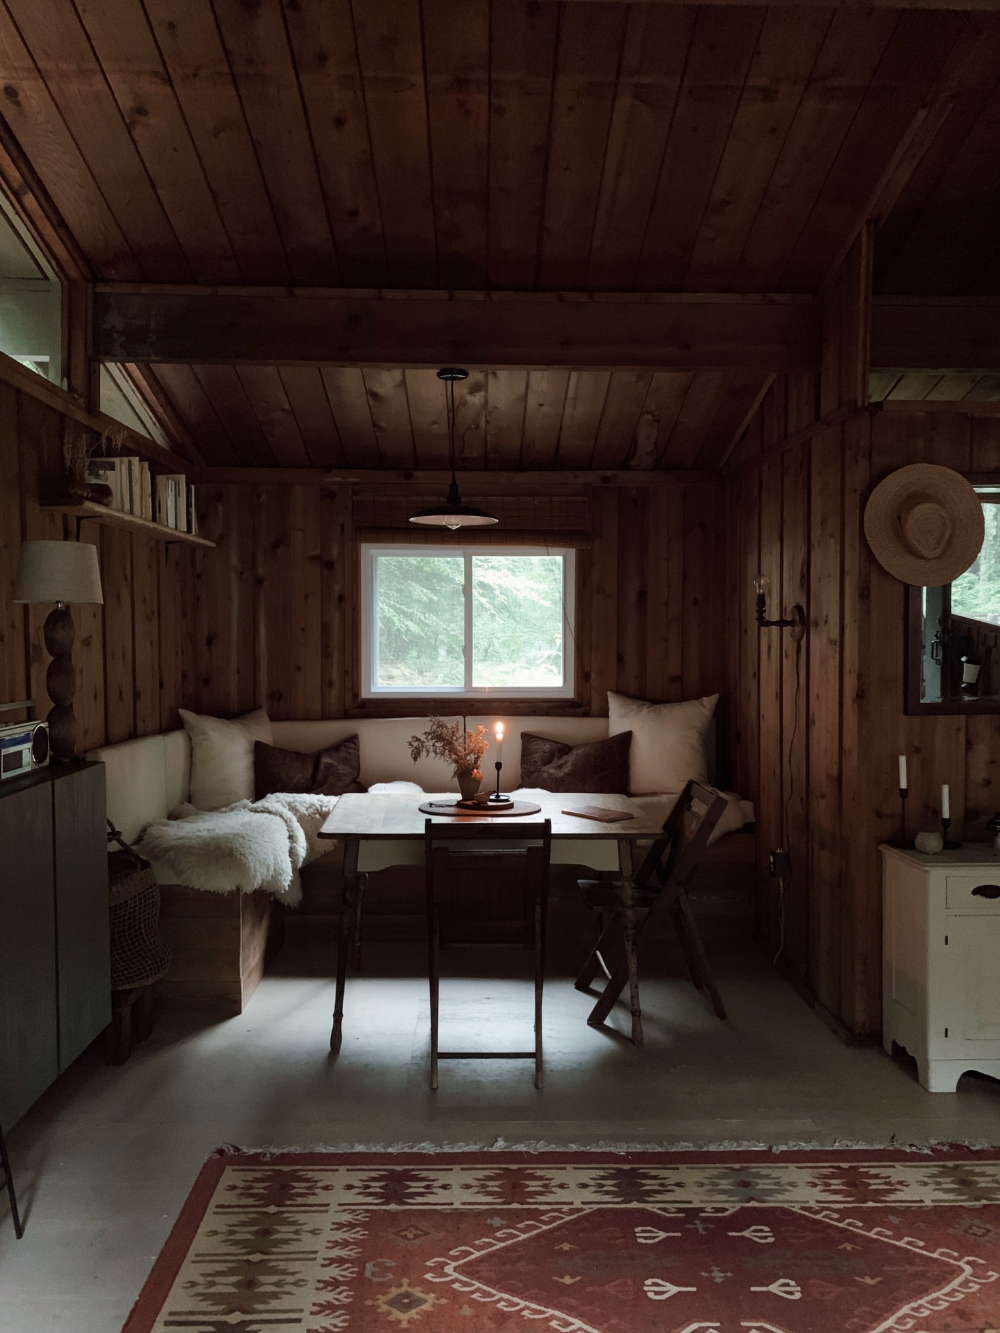 Unplugged: A Young Couples DIY, Totally Off-the-Grid Cabin in the New Hampshire Woods